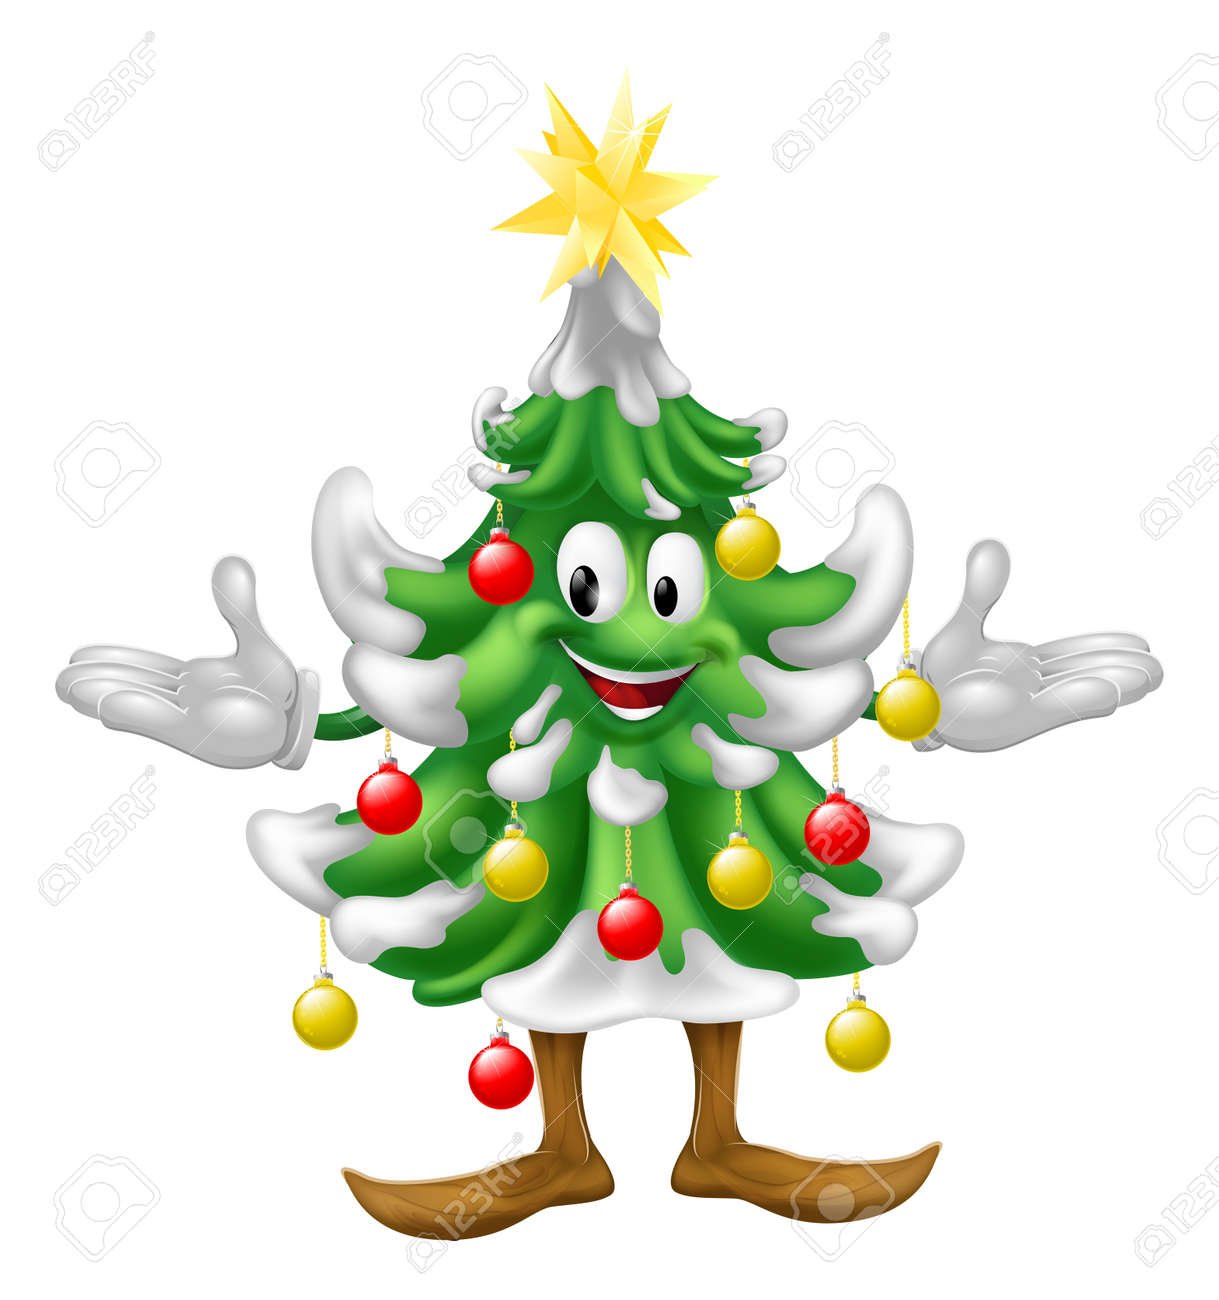 A Decorated Cartoon Christmas Tree Man With Baubles And A Star